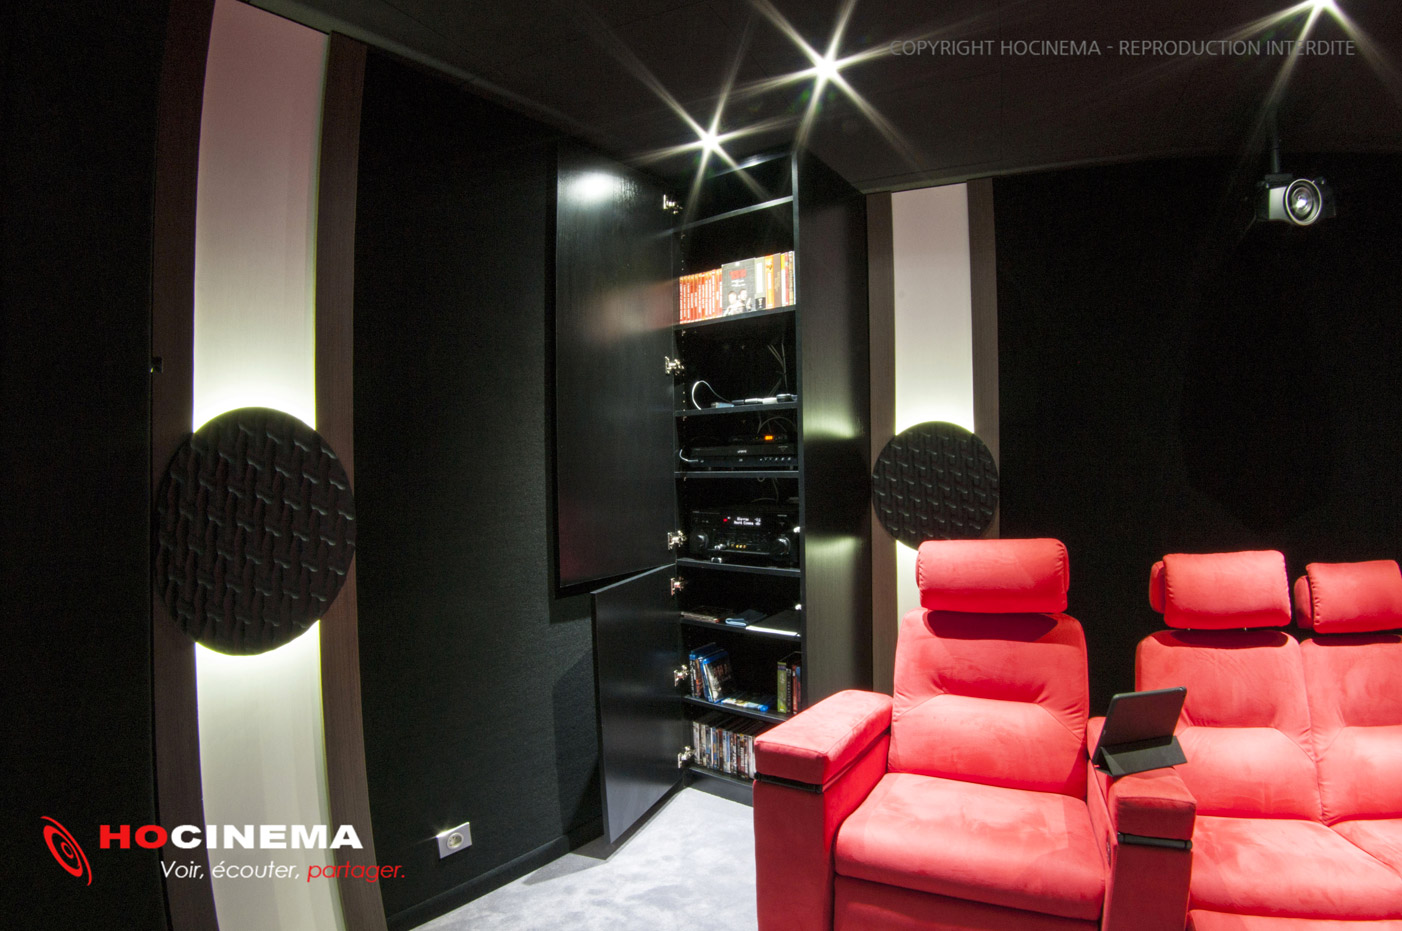 d coration salle de cinema le mans 21 salle des fetes. Black Bedroom Furniture Sets. Home Design Ideas